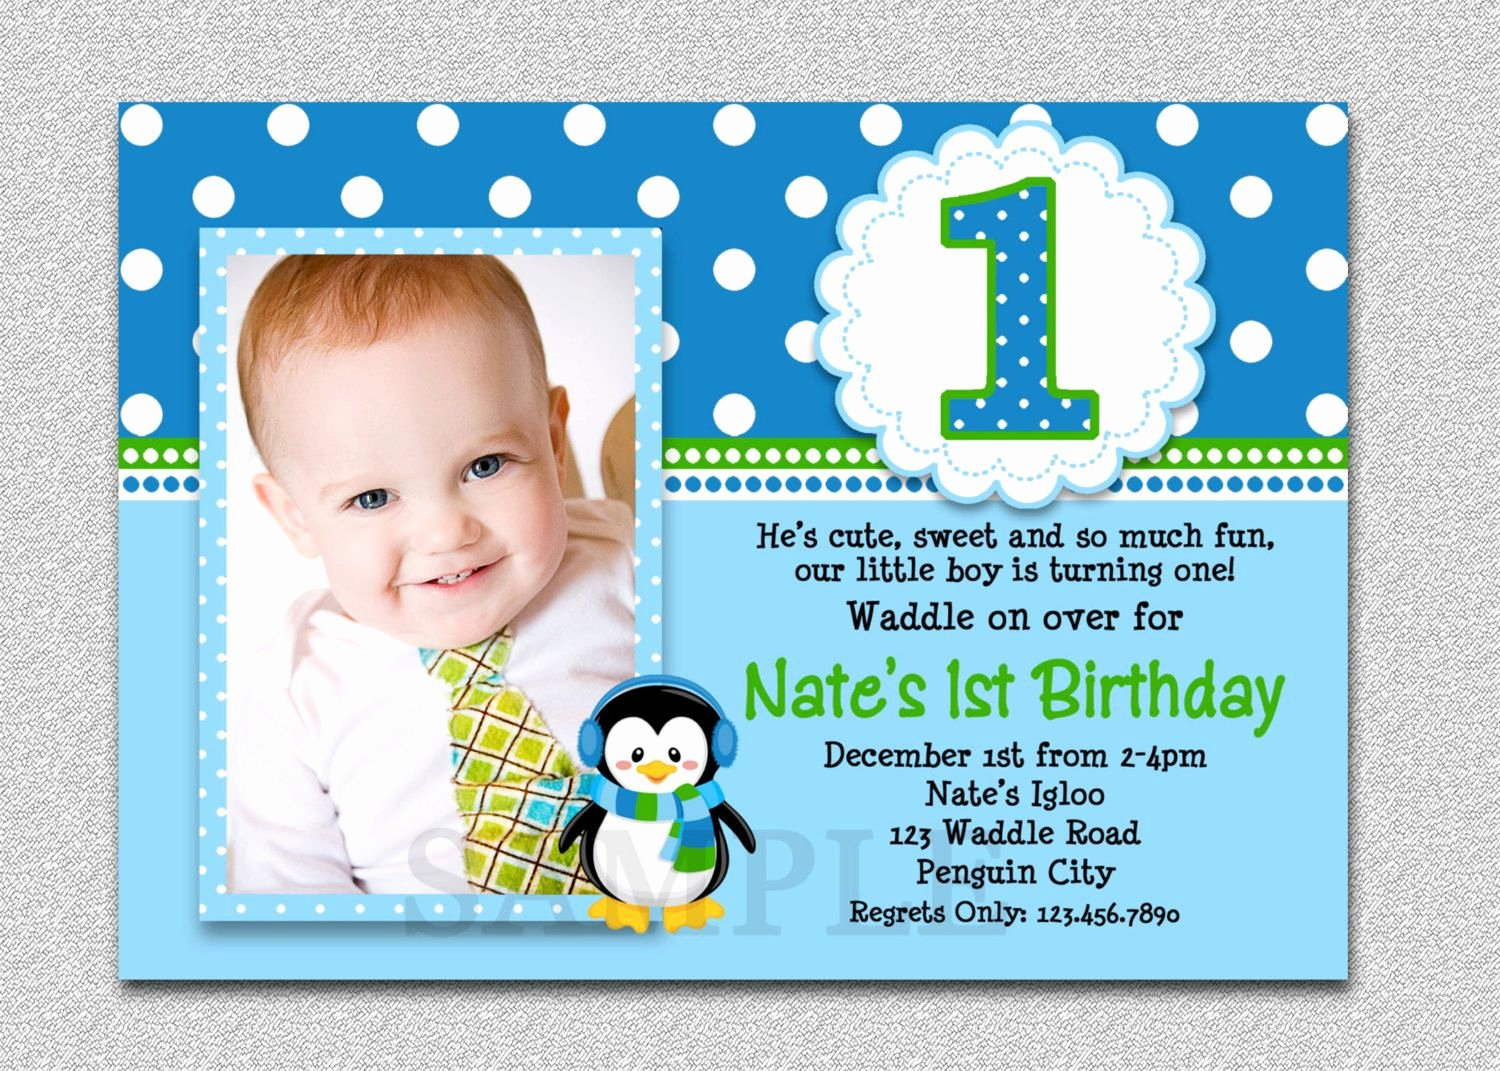 1st Birthday Invitation Wording Samples Awesome 1st Birthday Invitations Stuff to Buy